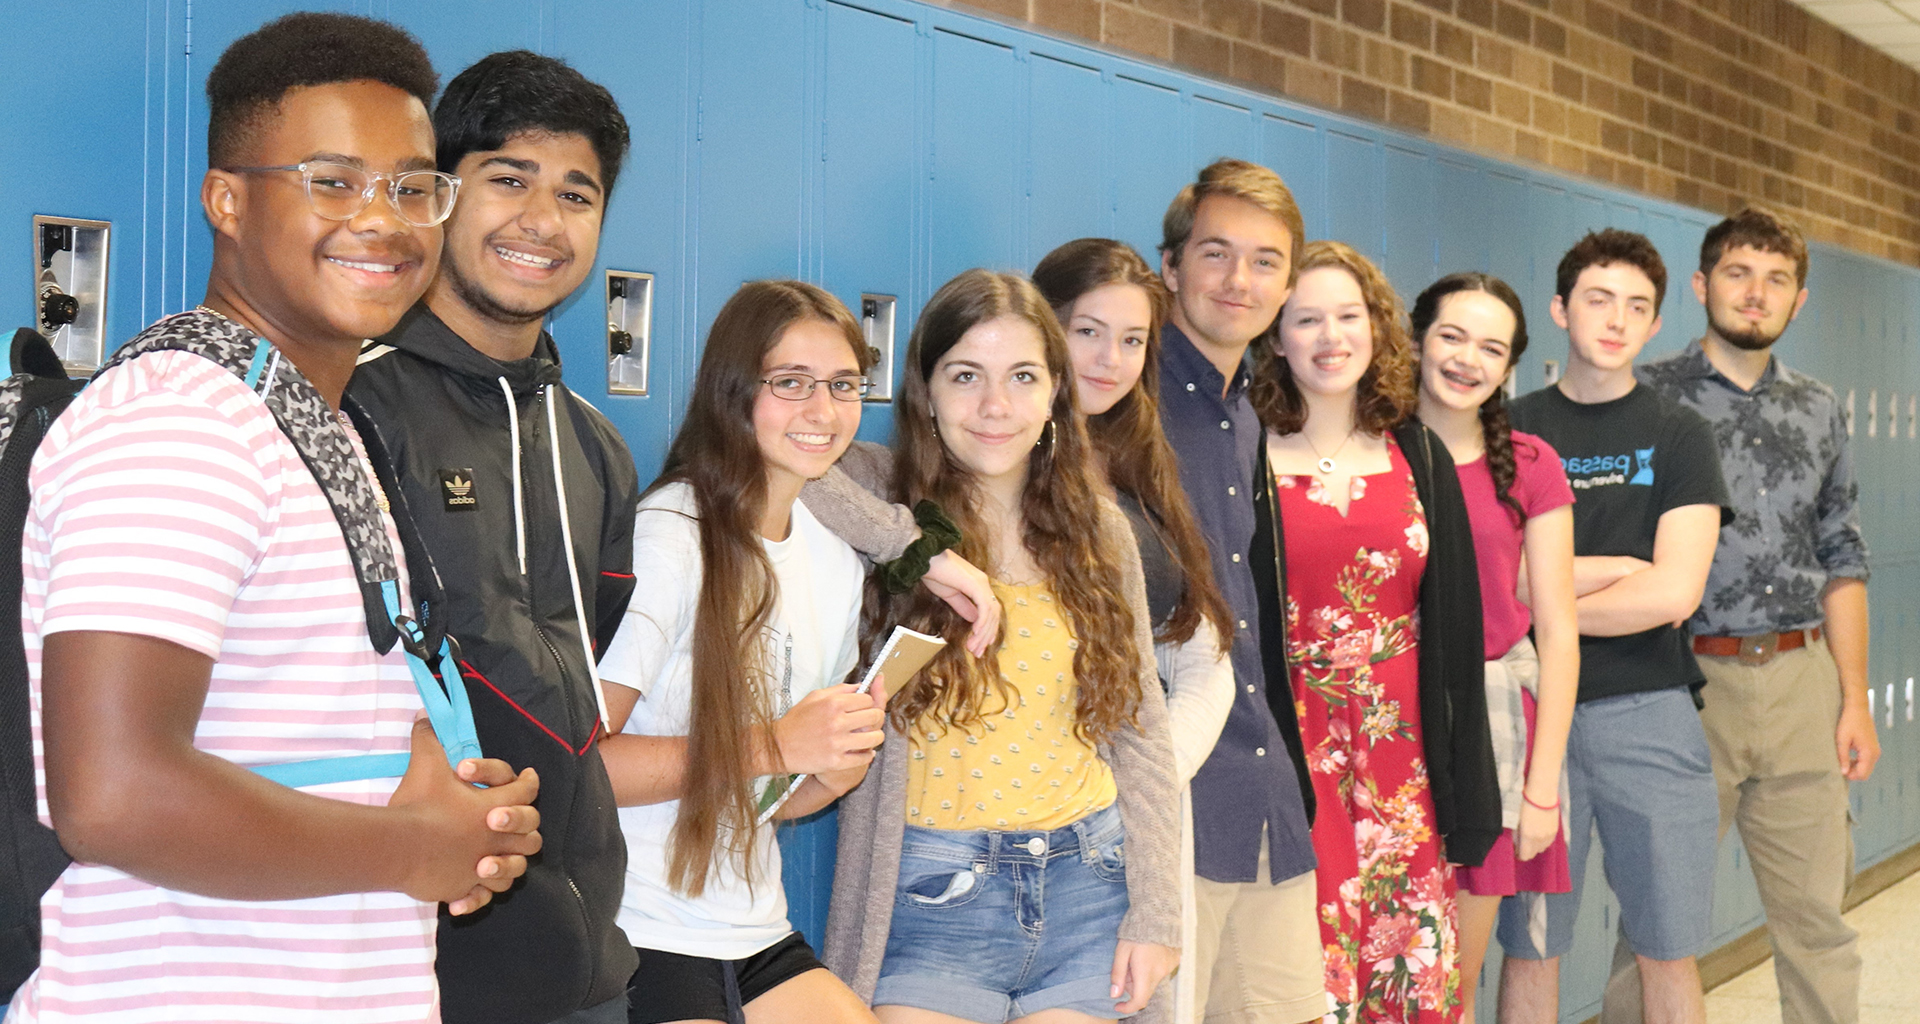 Line up of students standing against the lockers posing for a photo.